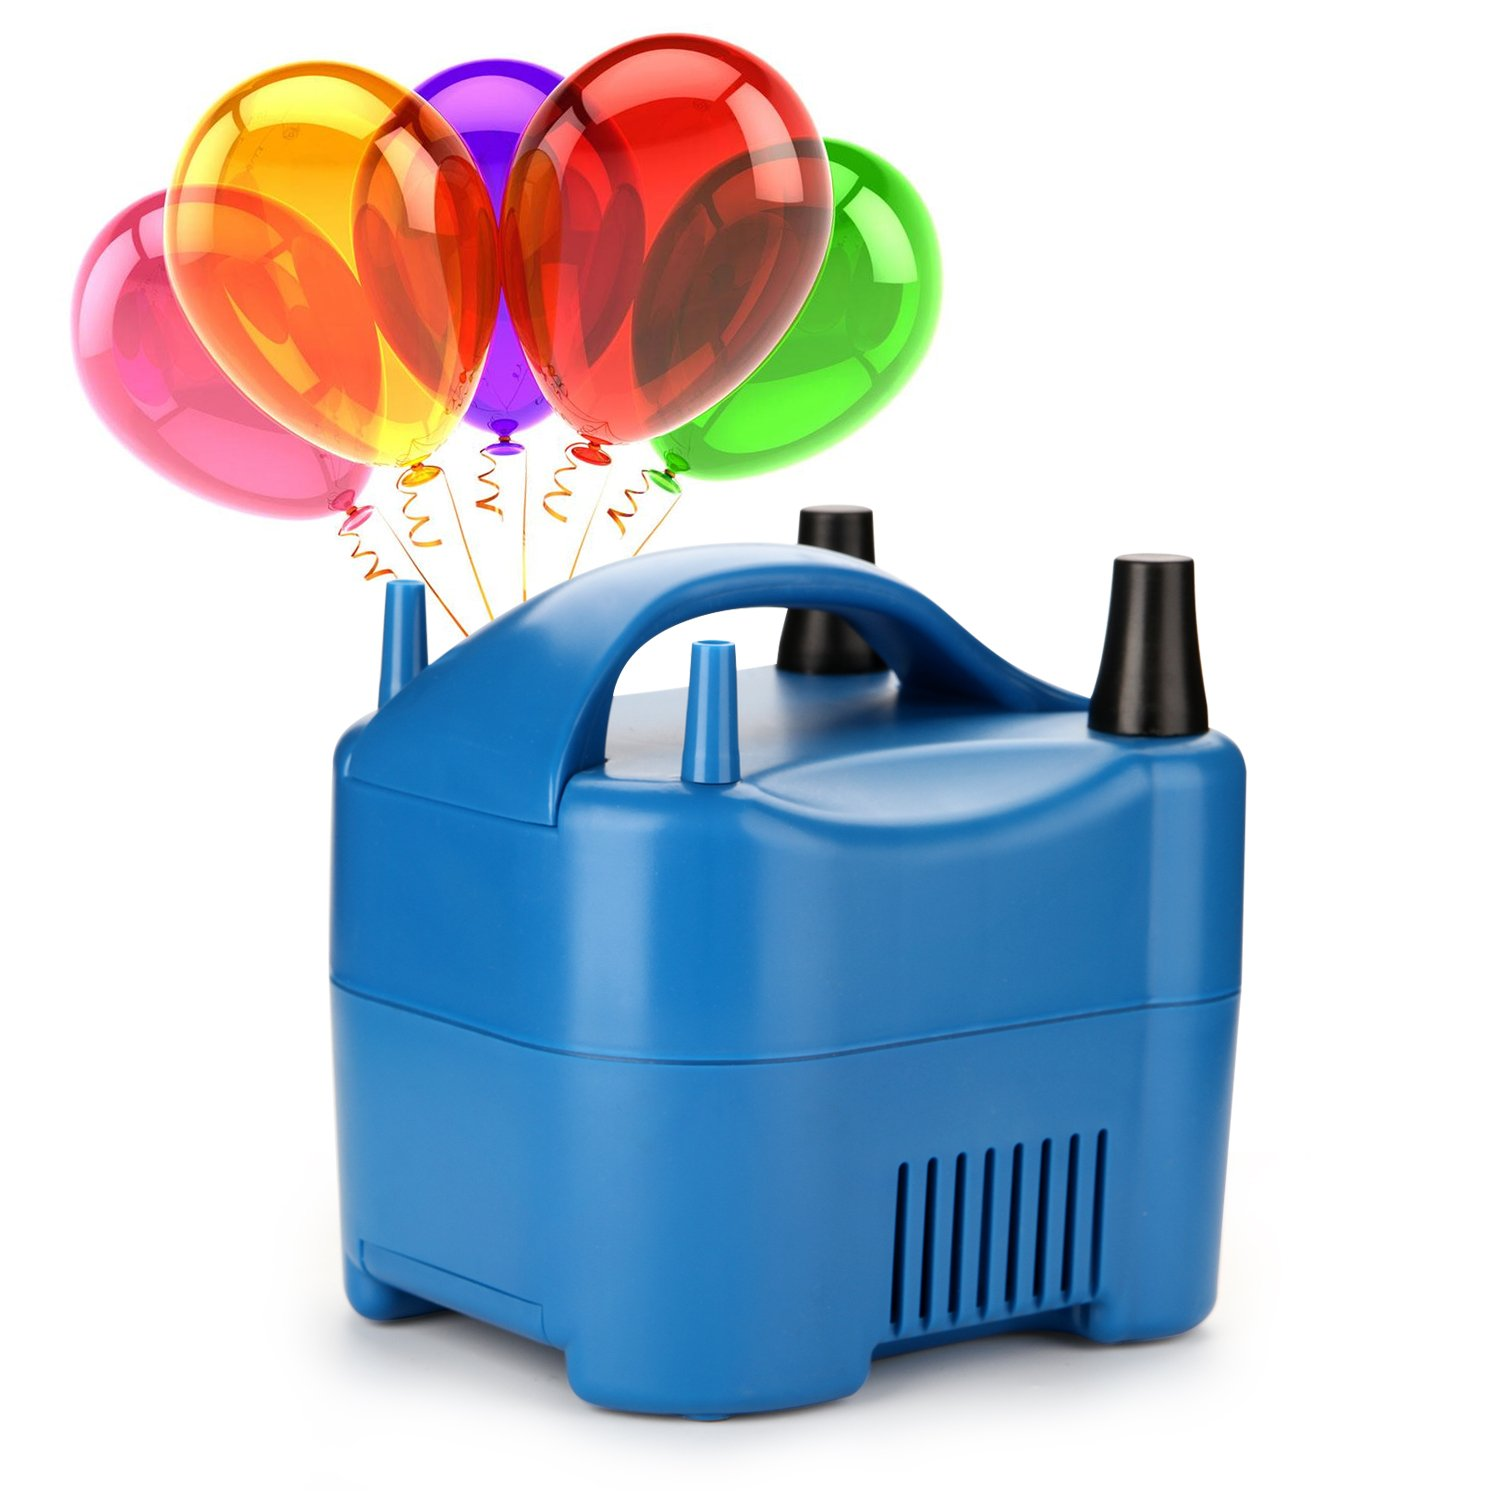 AGPtek Two Nozzle High Power Electric Balloon Inflator Pump Portable Blue Air Blower,680W High Power,Inflate In One Second by AGPTEK (Image #1)